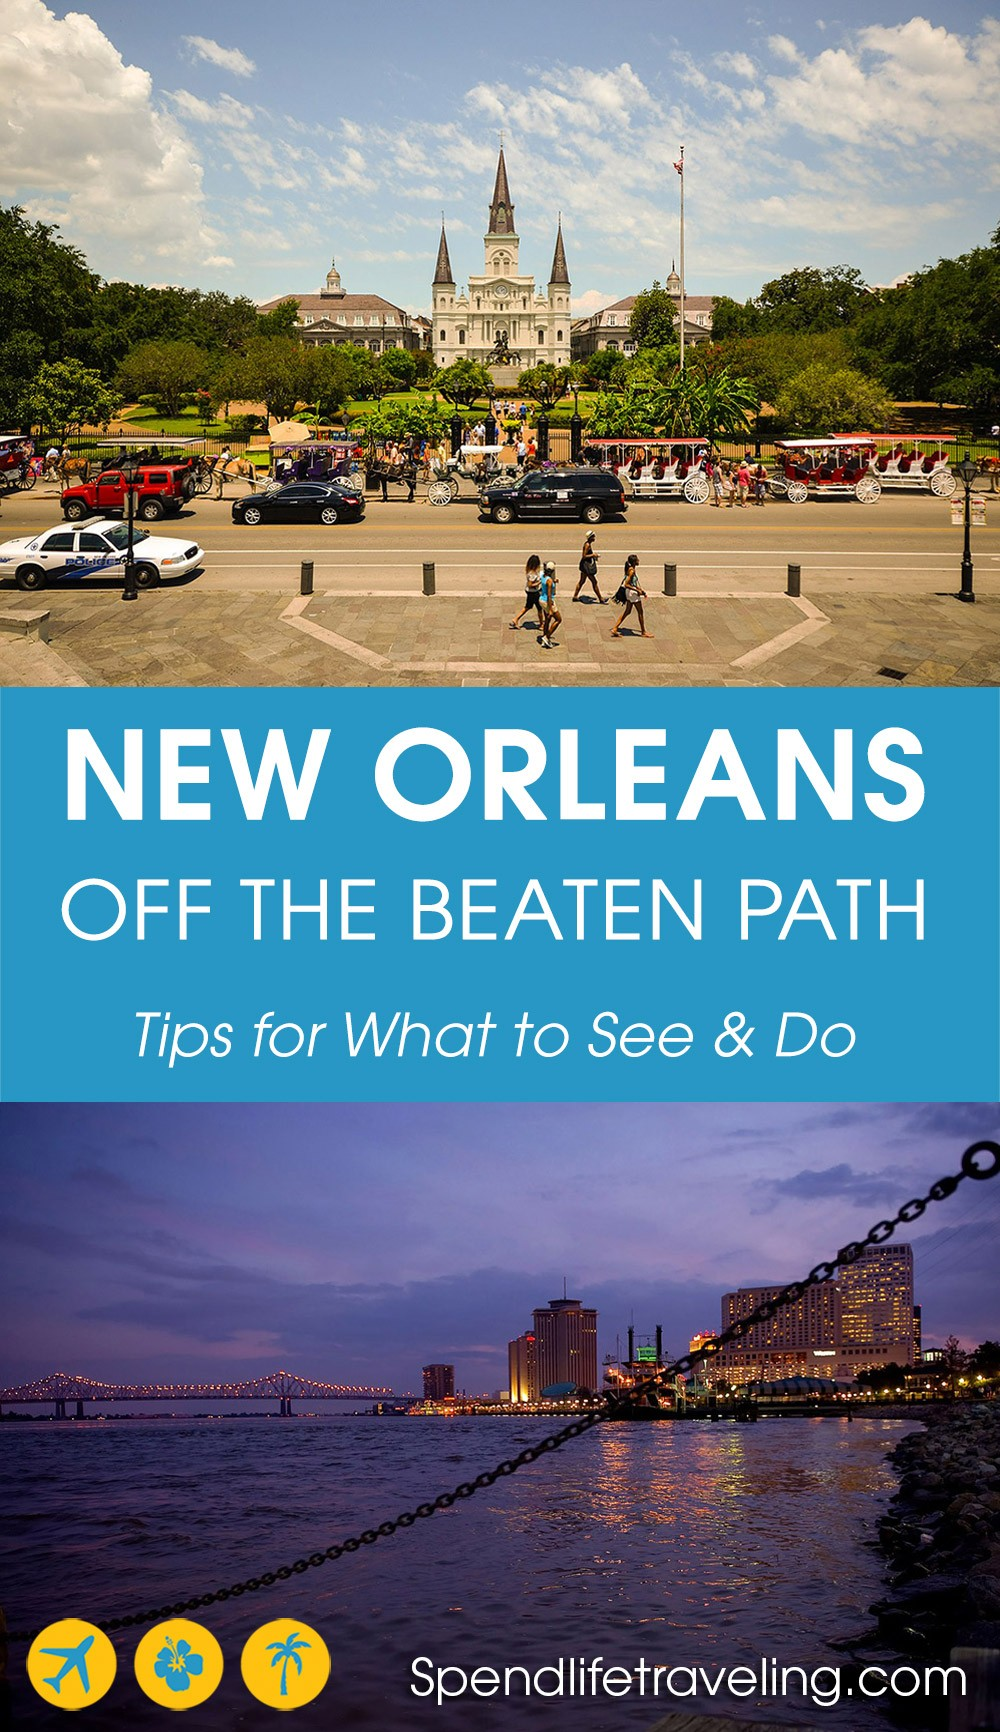 Tips for things to do in New Orleans if you really want to get to know the city